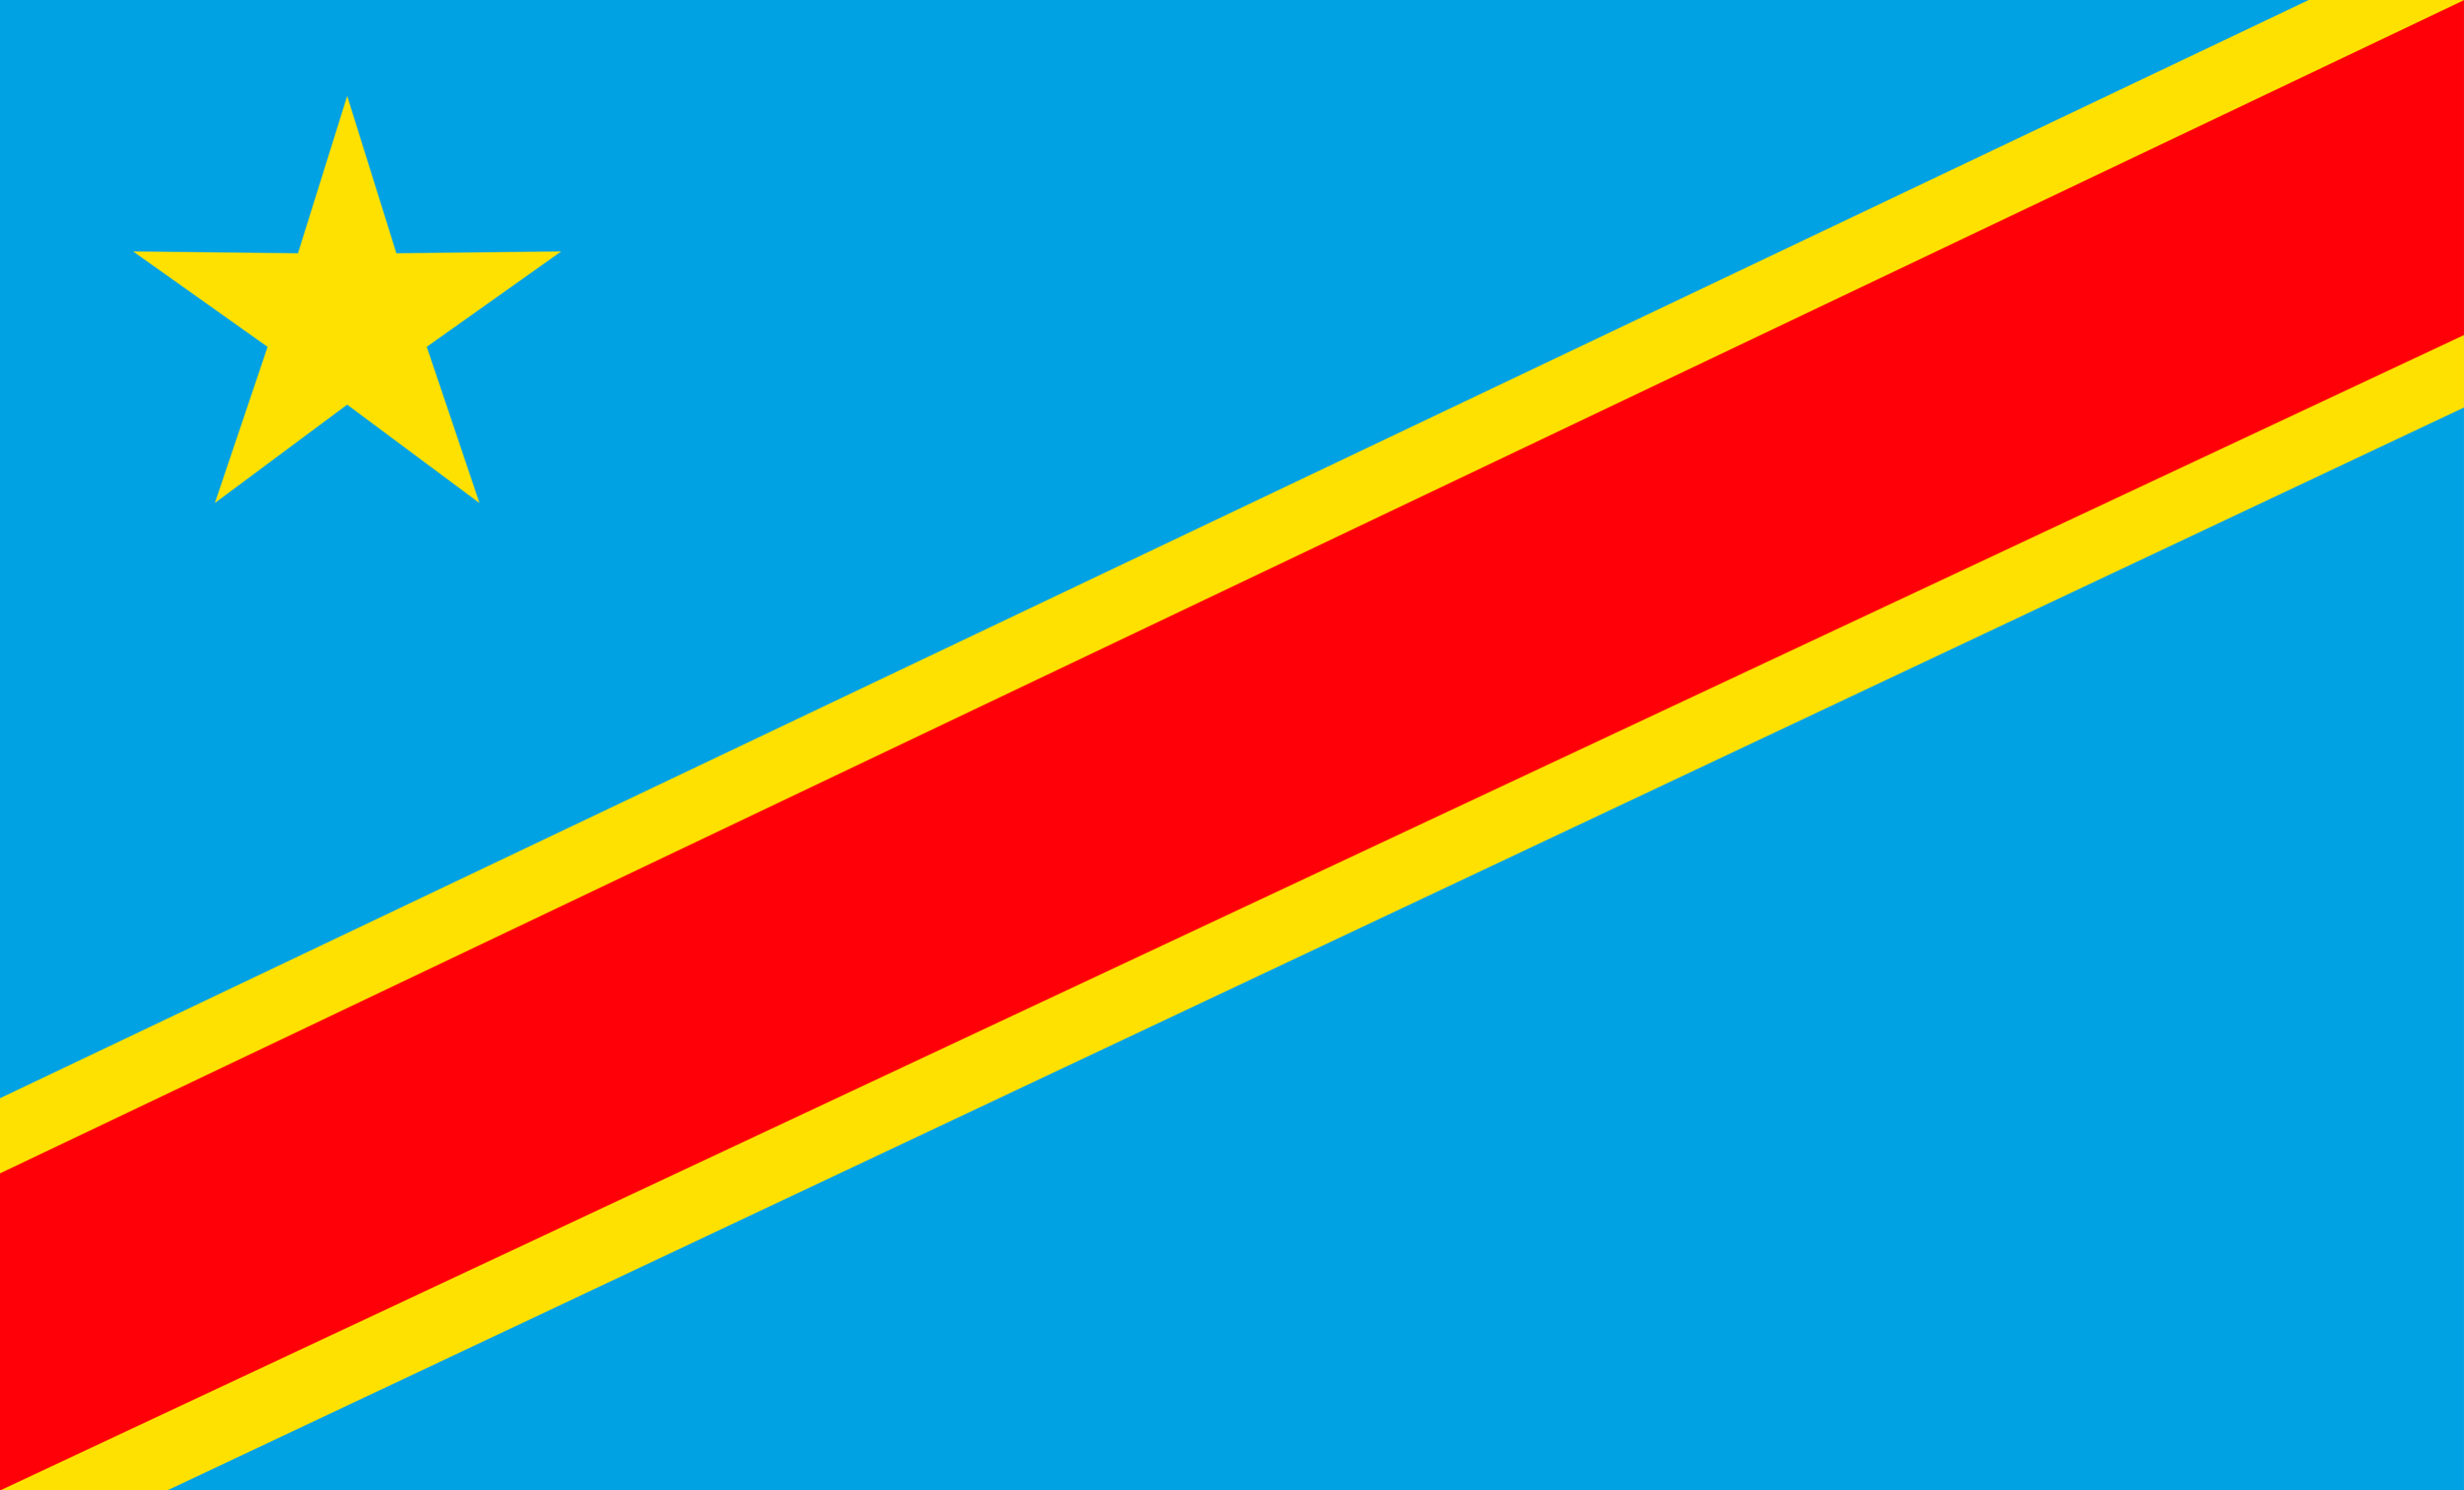 The National Flag of the Democratic Republic of Congo features a sky-blue background with a diagonally divided red stripe bordered by two narrow yellow stripes.